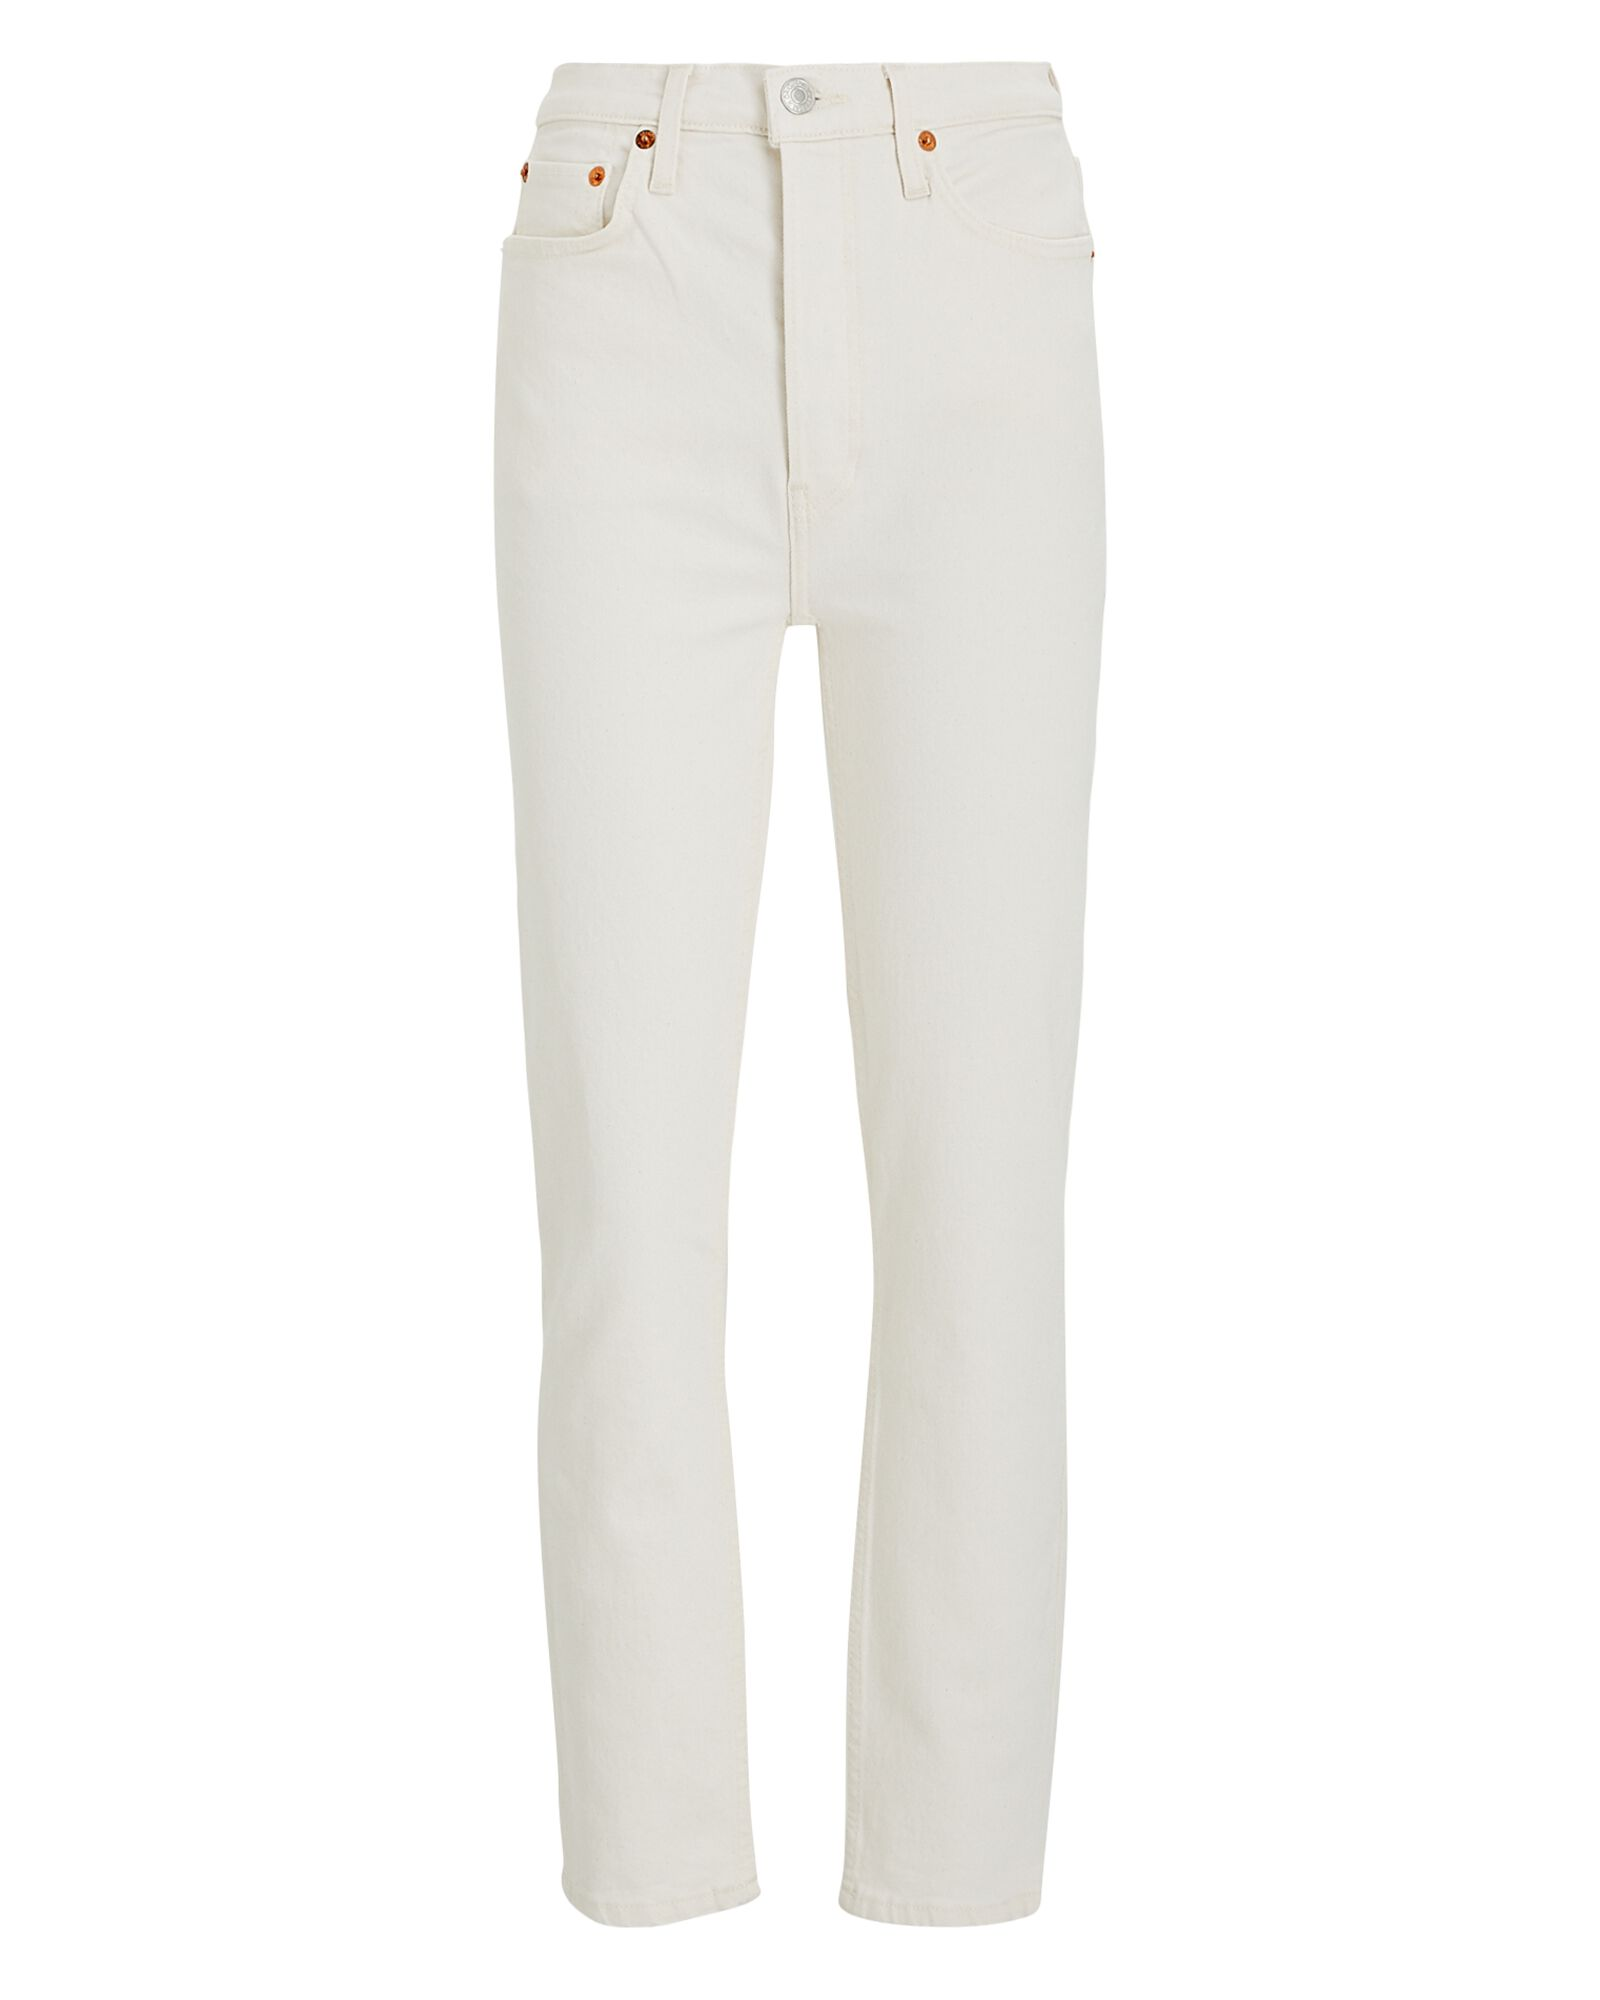 High-Rise Ankle Crop Jeans, VINTAGE WHITE, hi-res